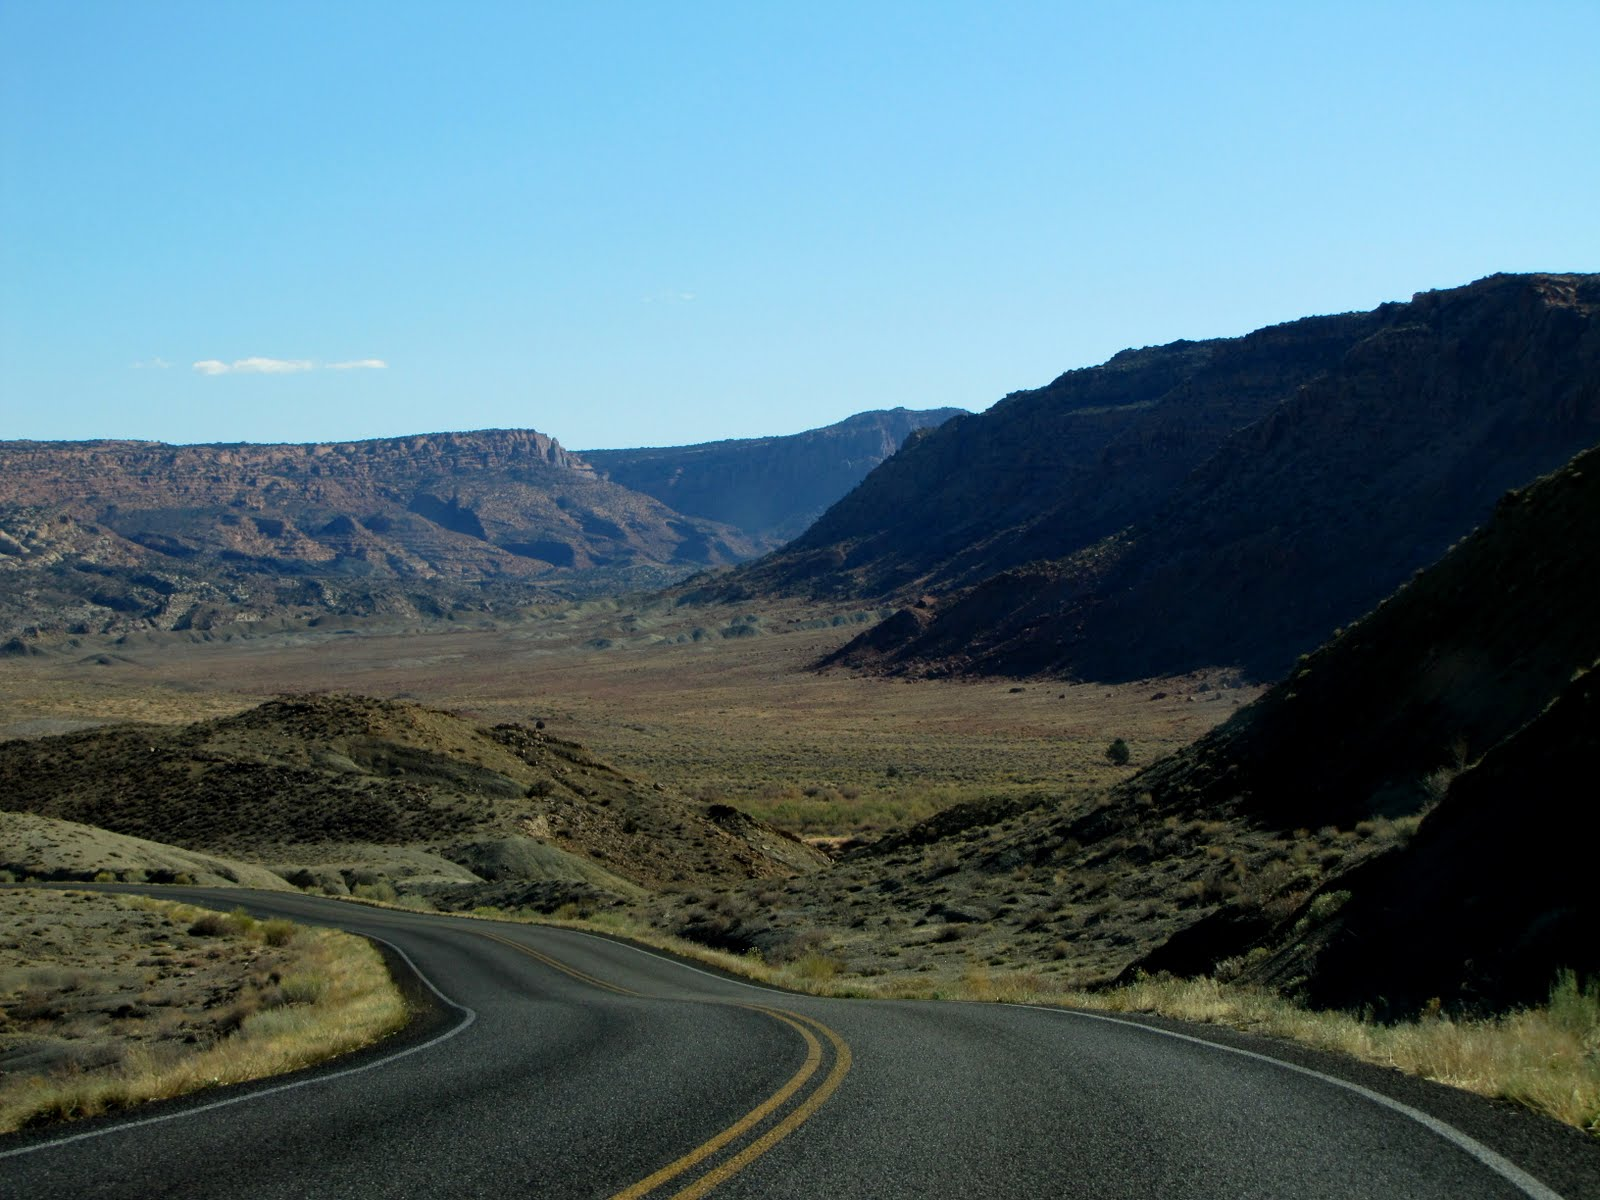 Going to the Arches Valley